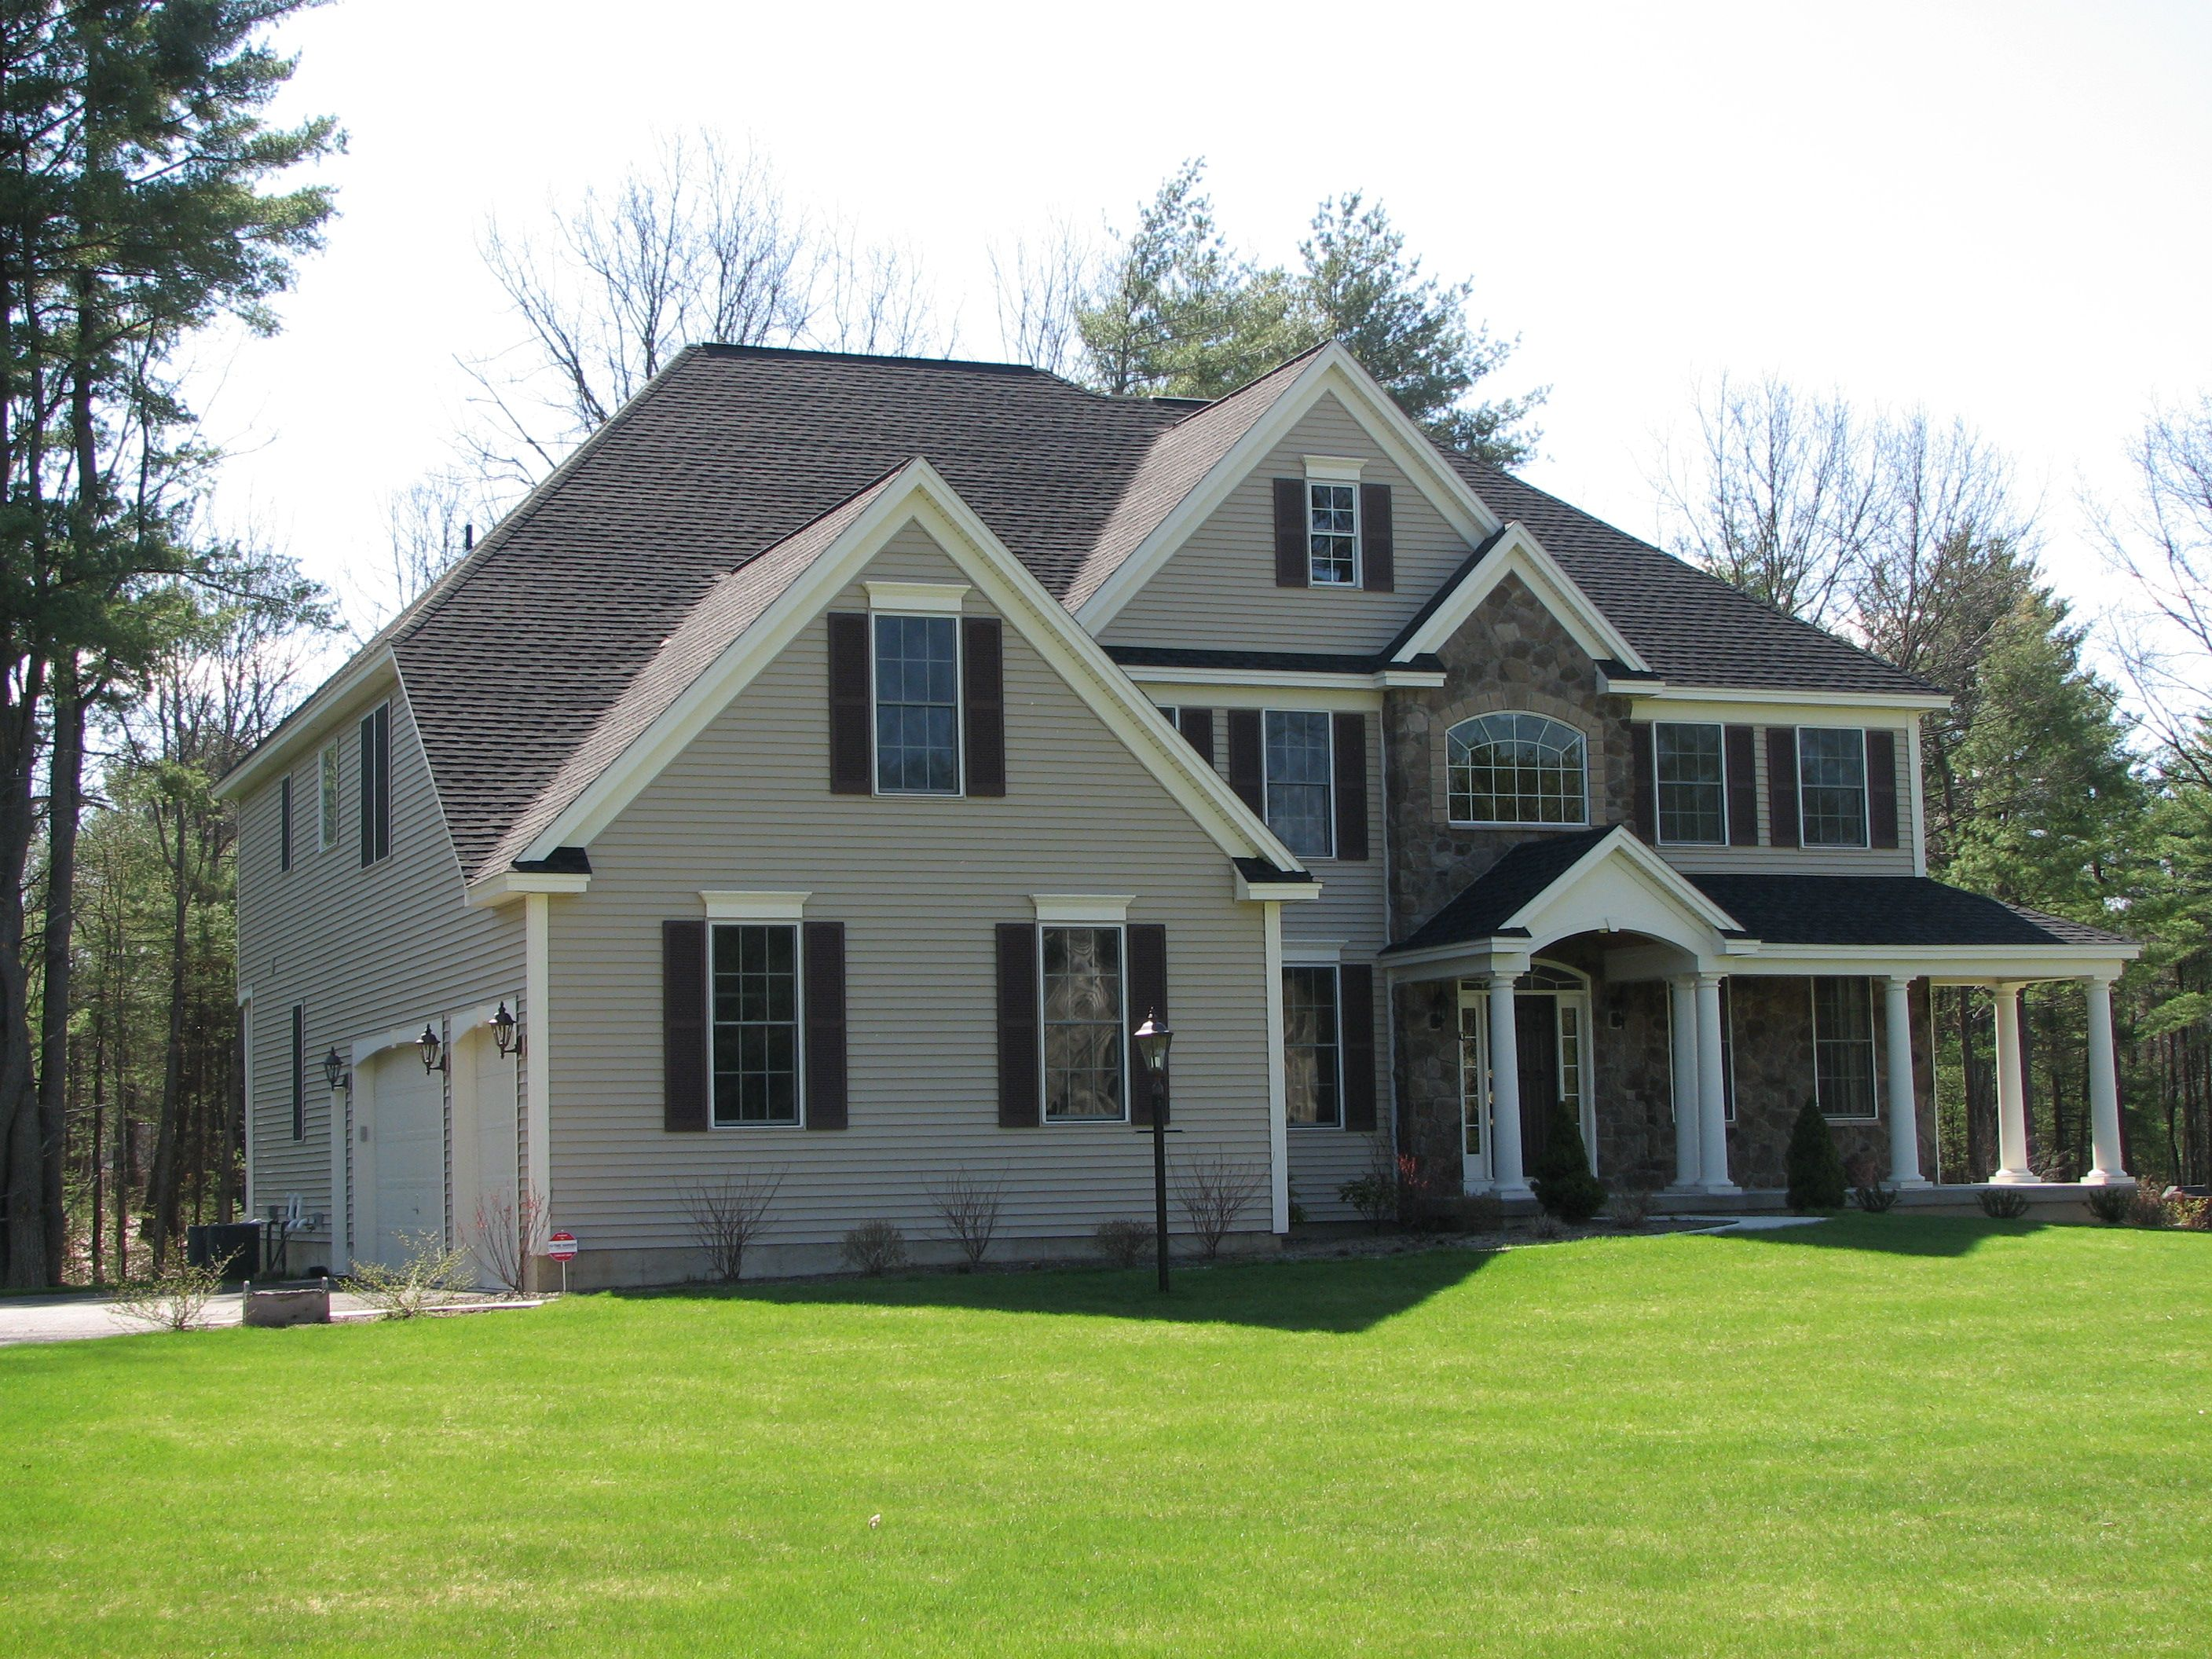 Belmonte Builders Home Featuring Miratec Trim To See More Homes Visit The